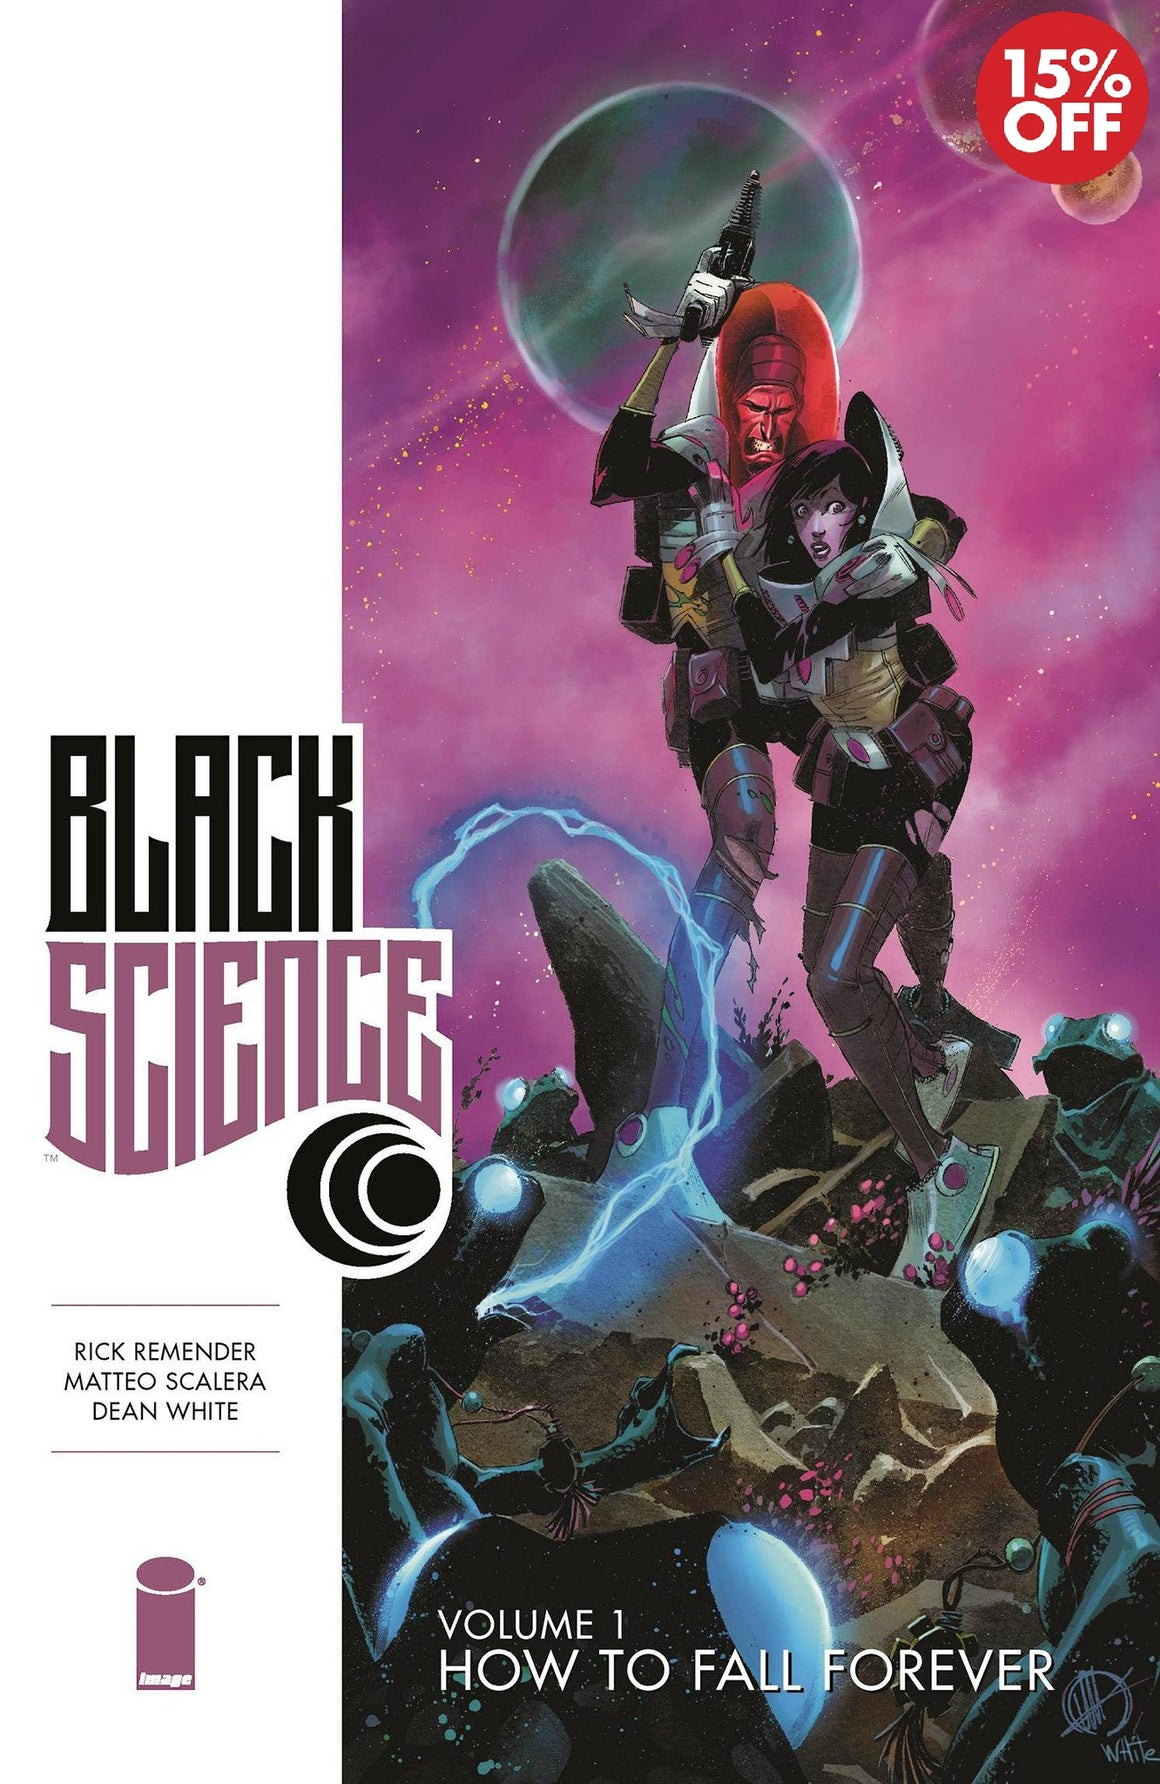 BLACK SCIENCE TP 01 HOW TO FALL FOREVER